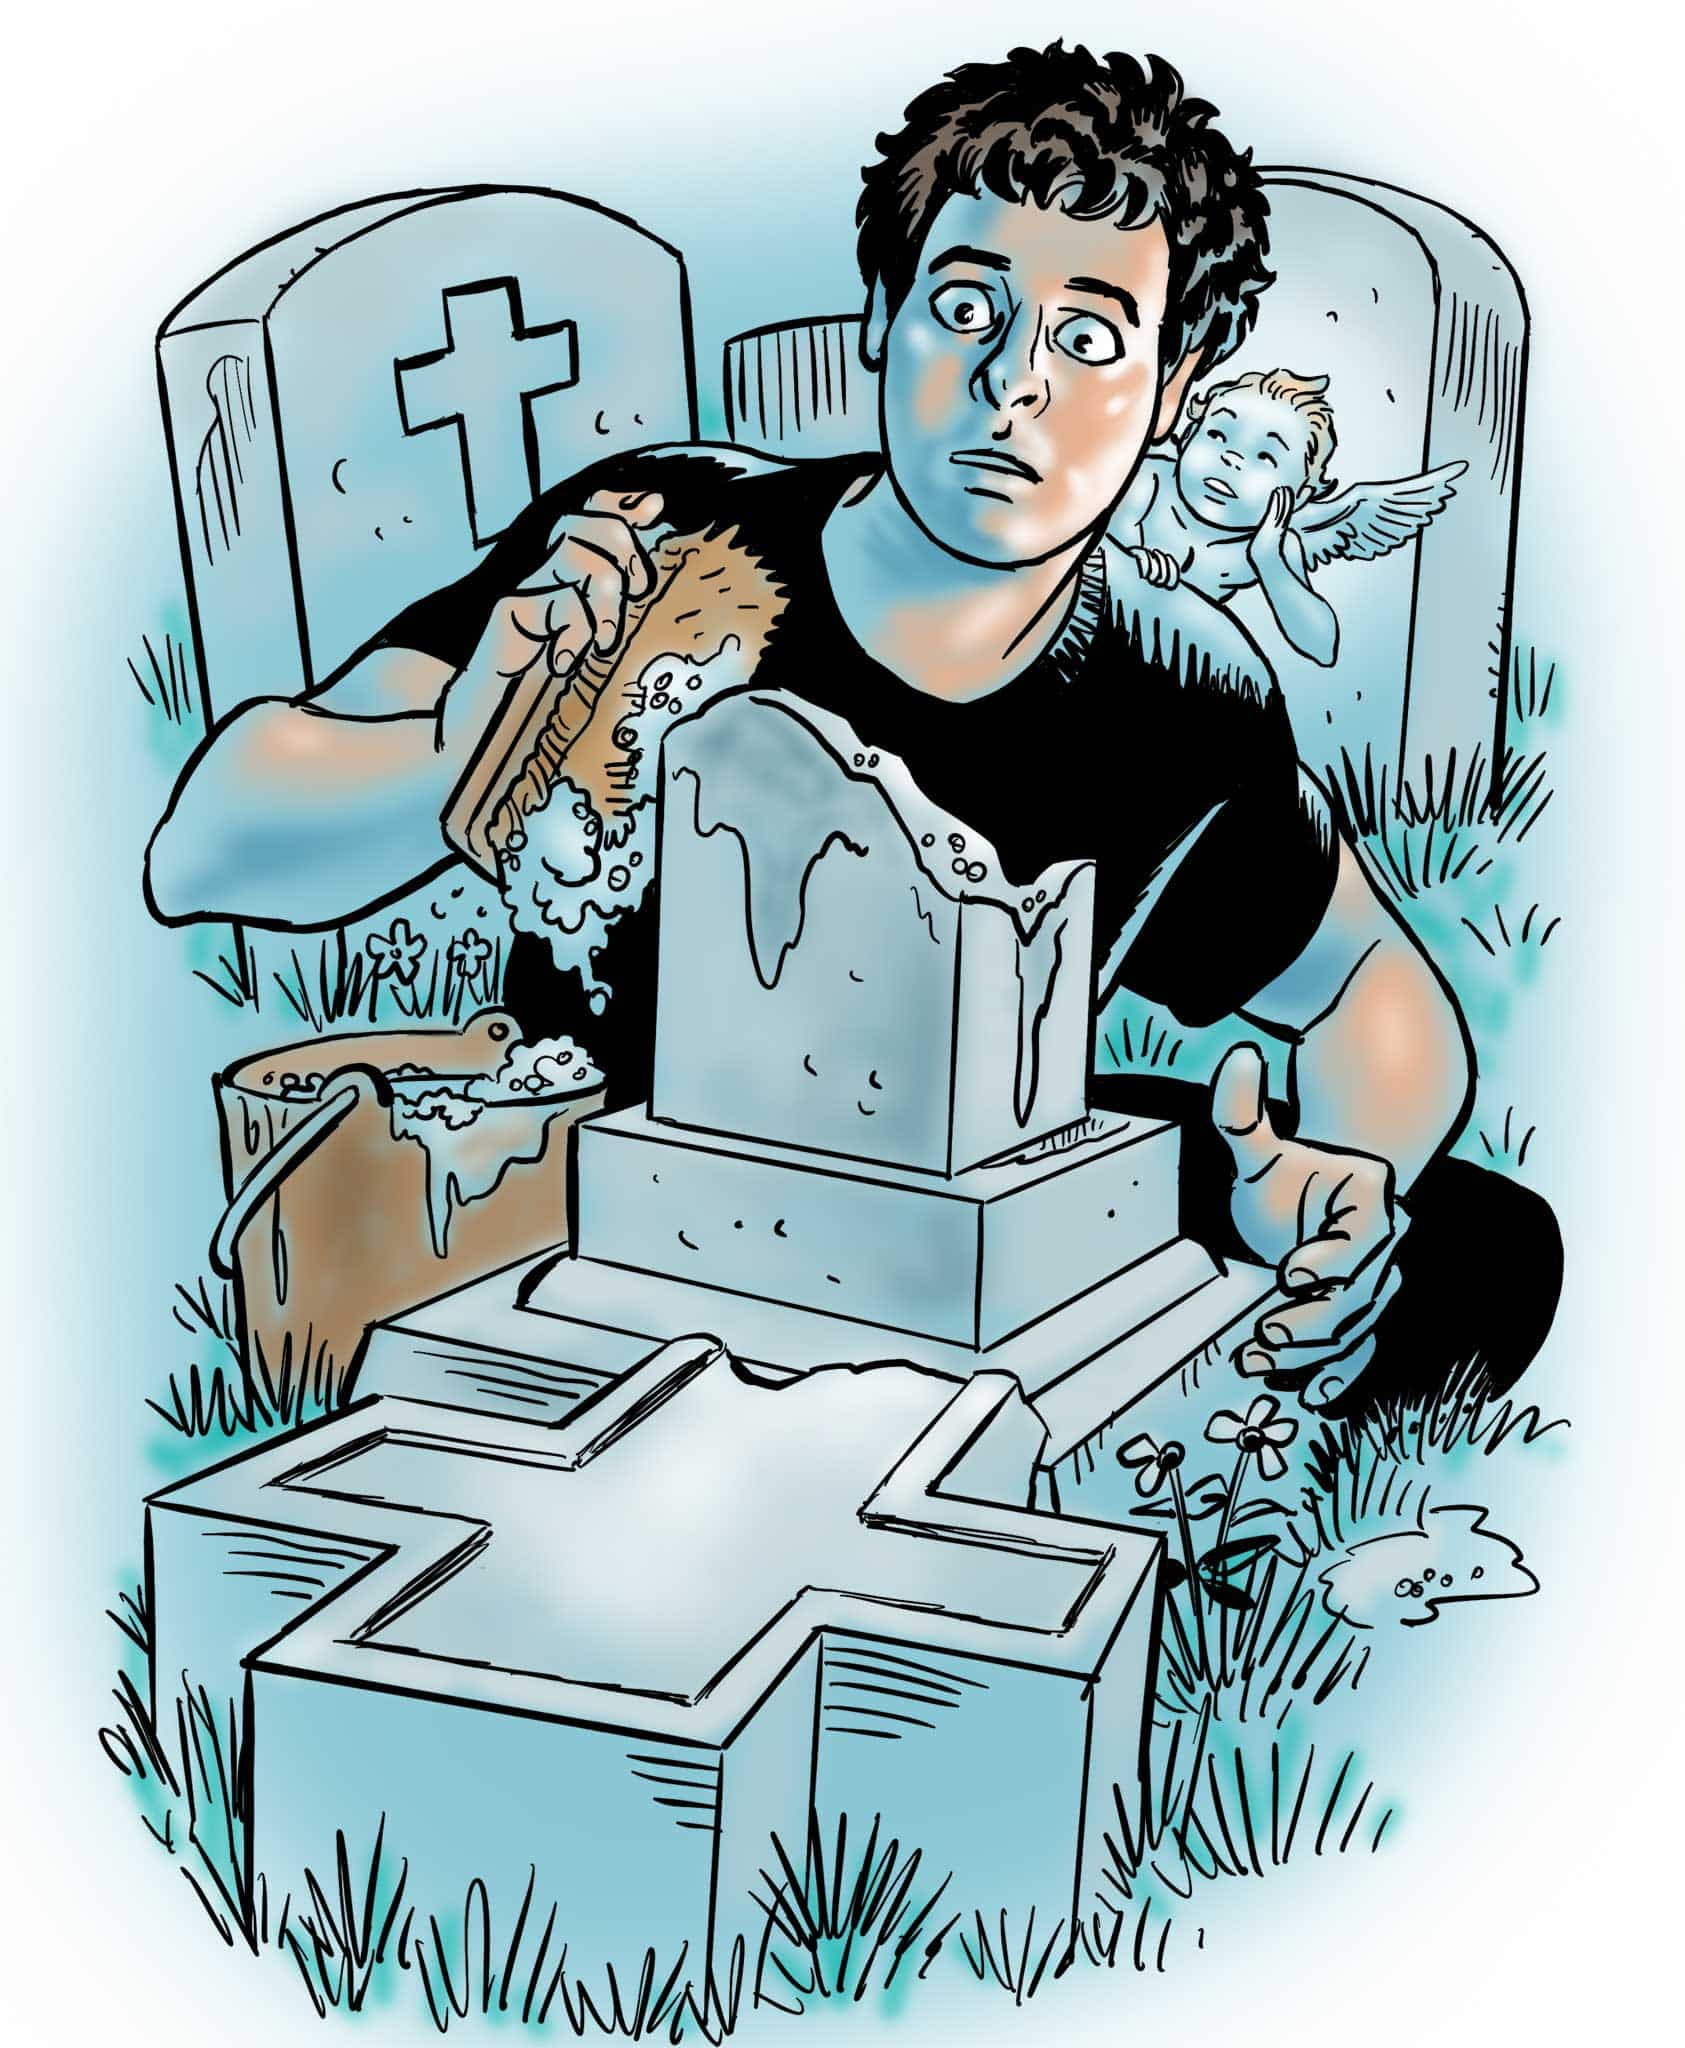 KH3529C-cleaning-tombstone-graveyard